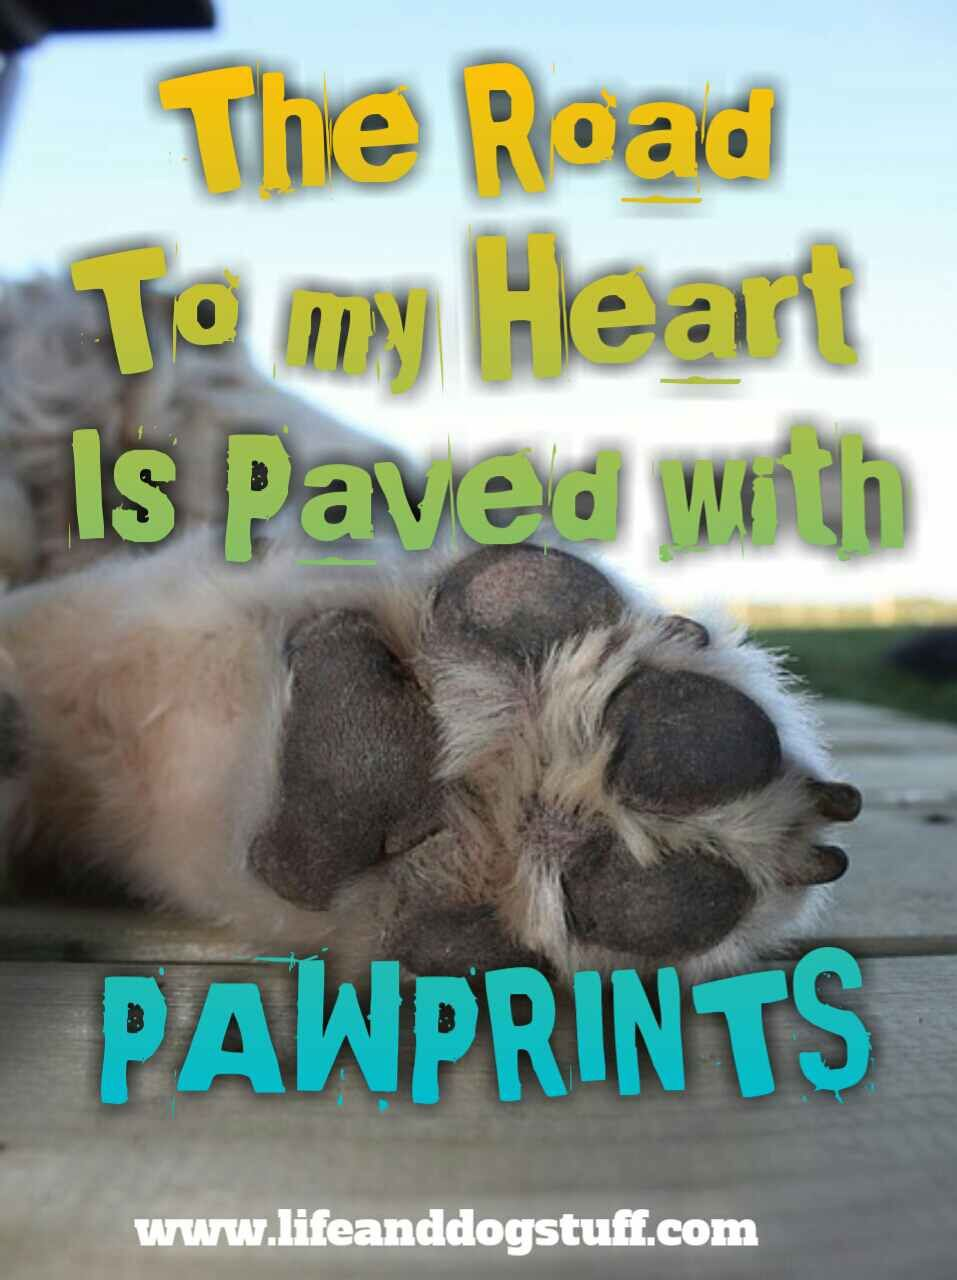 35 Most Beautiful Dog Quotes And Sayings Cute Dog Quotes Dog